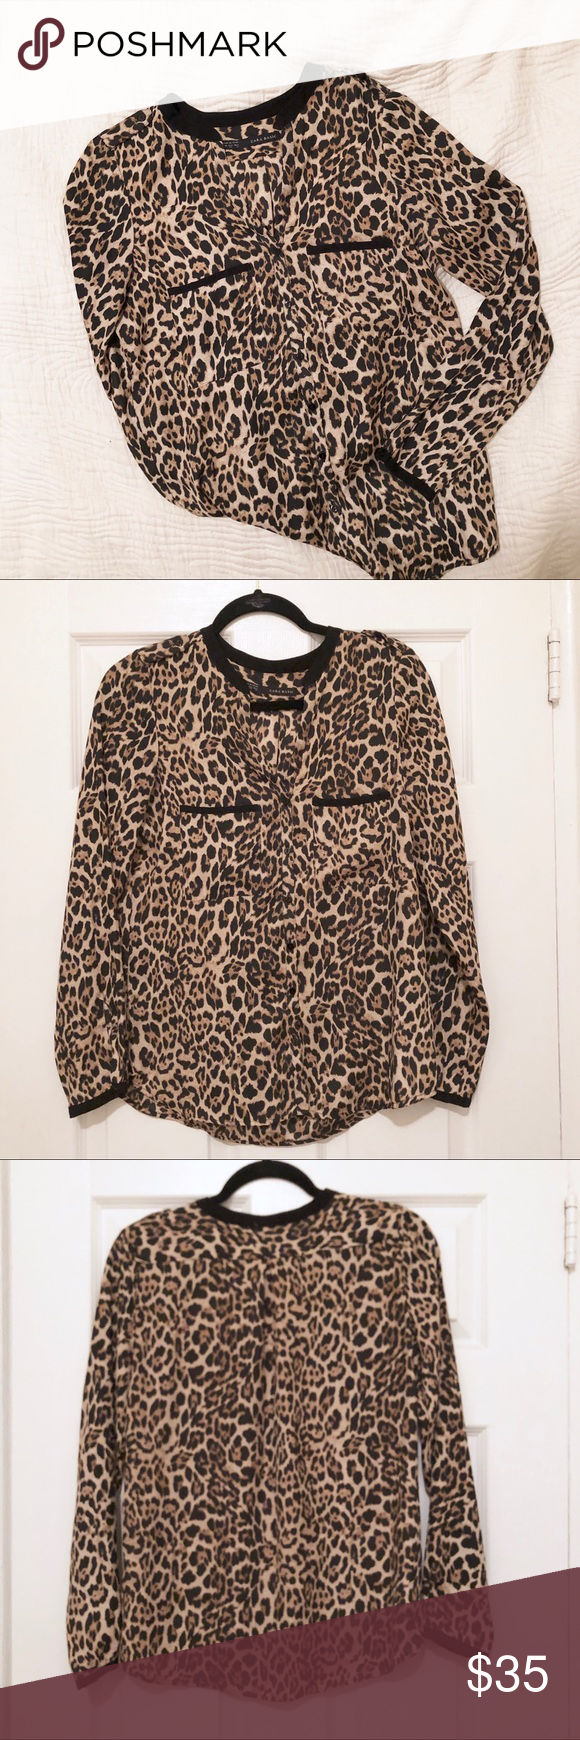 c70defee20db Zara Leopard Blouse Zara silk long sleeve leopard blouse in size XS.  Buttons down the entire front with two chest pockets and black trim.